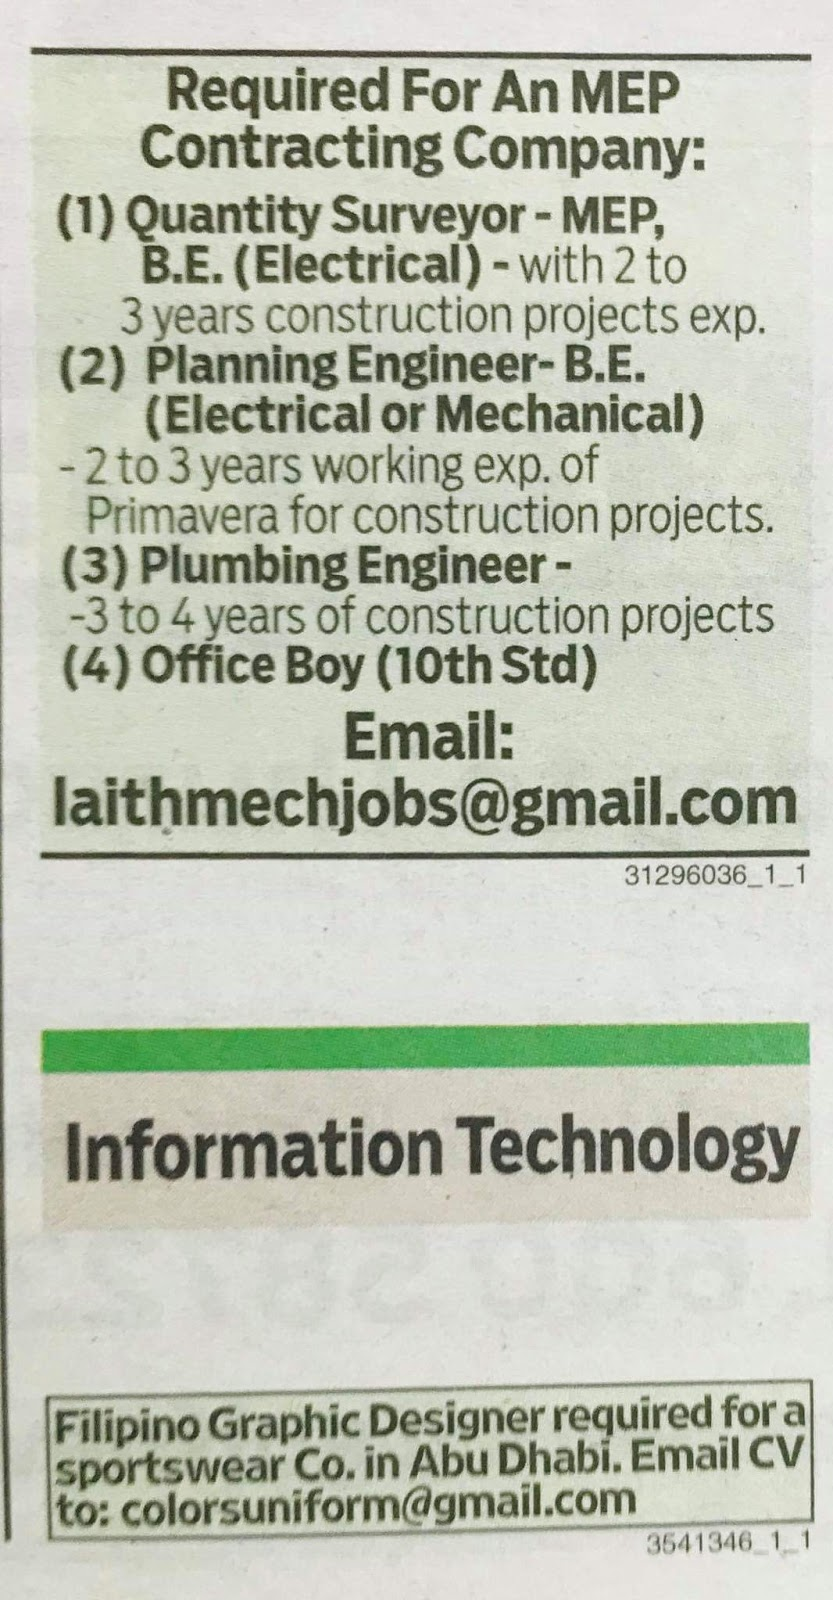 Required Quantity Surveyor, Planning Engineer, Plumber Engineer